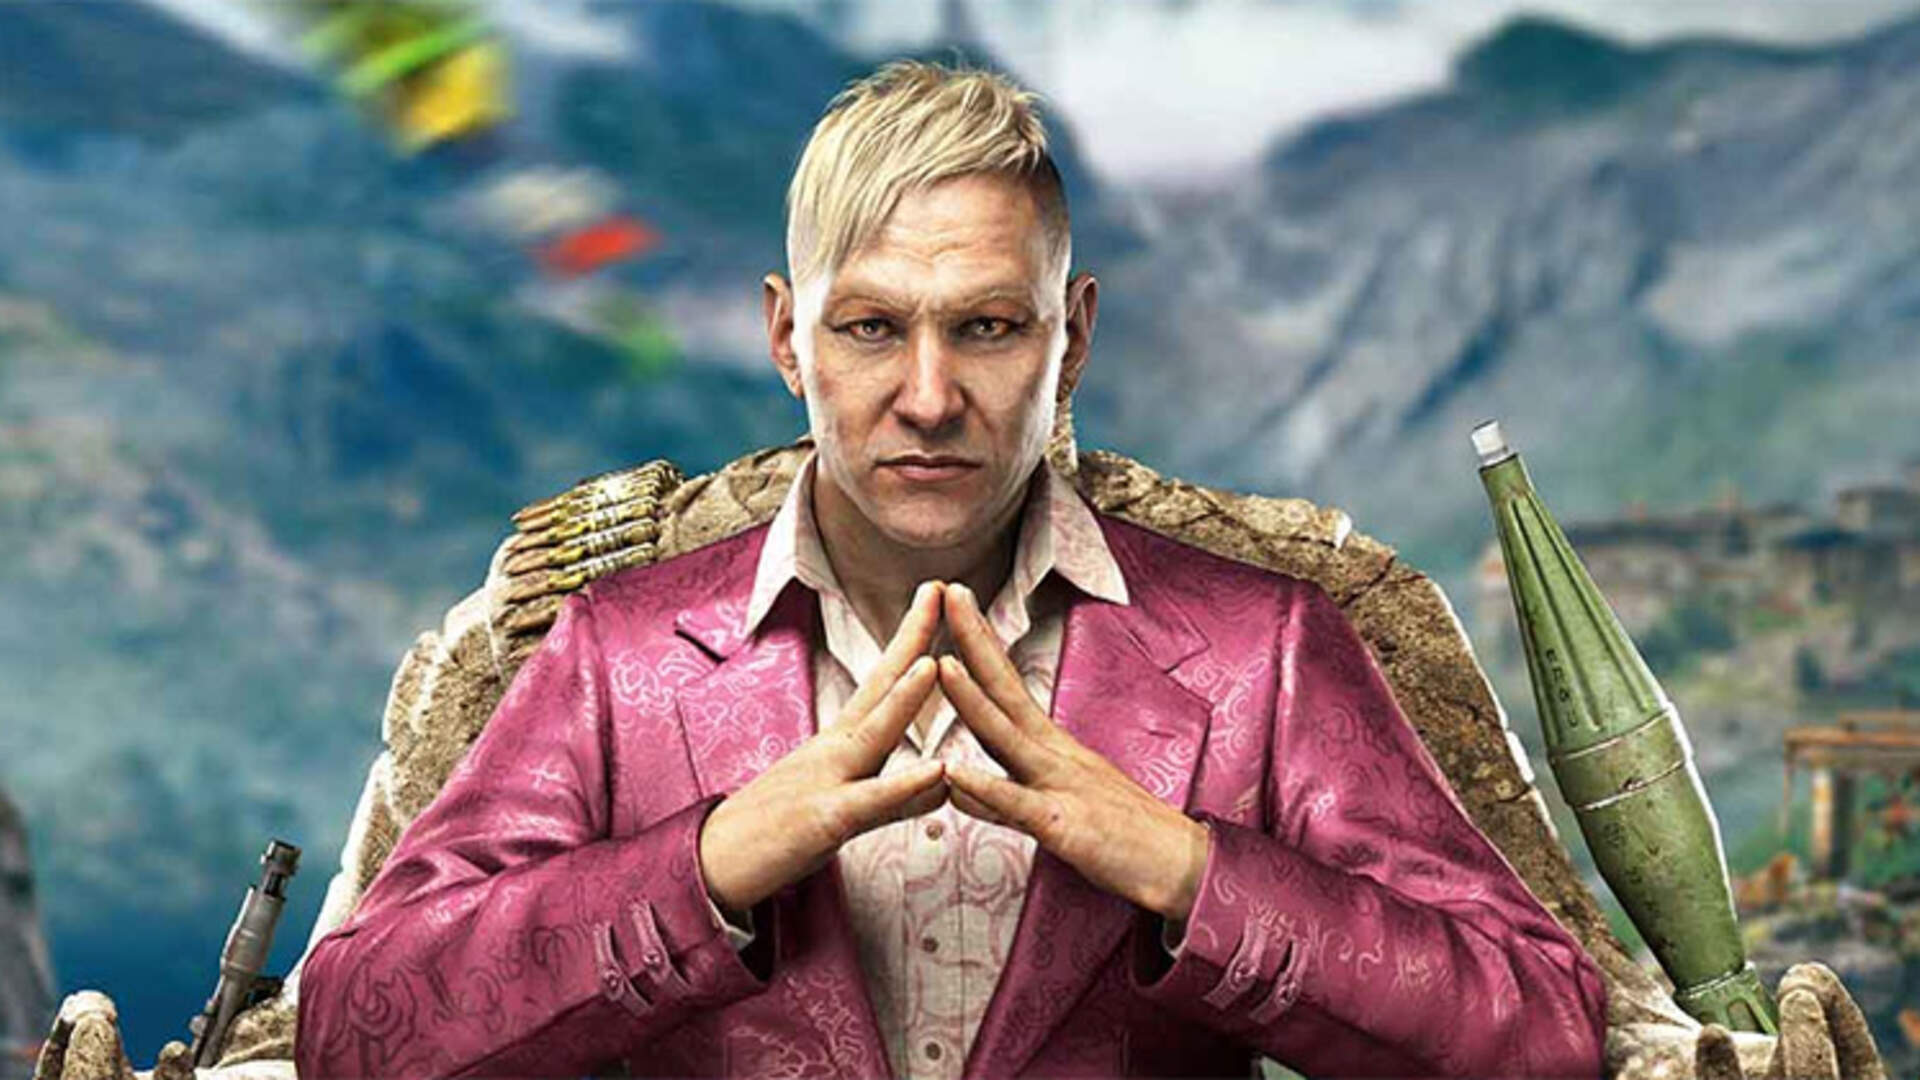 Far Cry 4 PS4 Review: The Hills Are Alive with the Sound of Side Quests